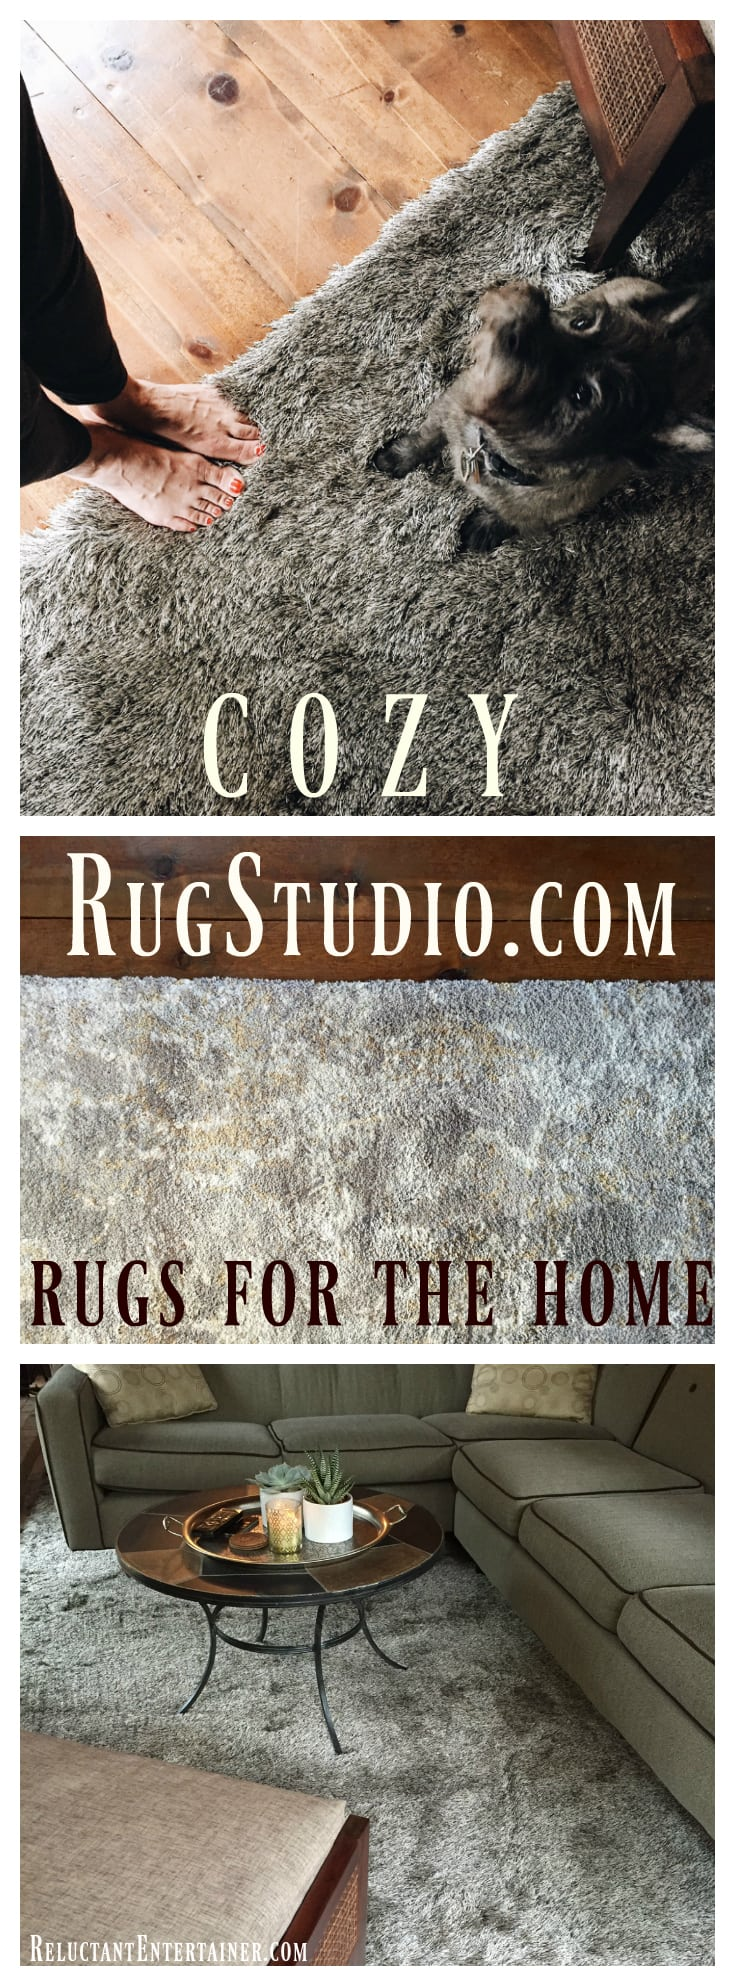 Cozy RugStudio Rugs for the Home - Mountain Home DIY | ReluctantEntertainer.com